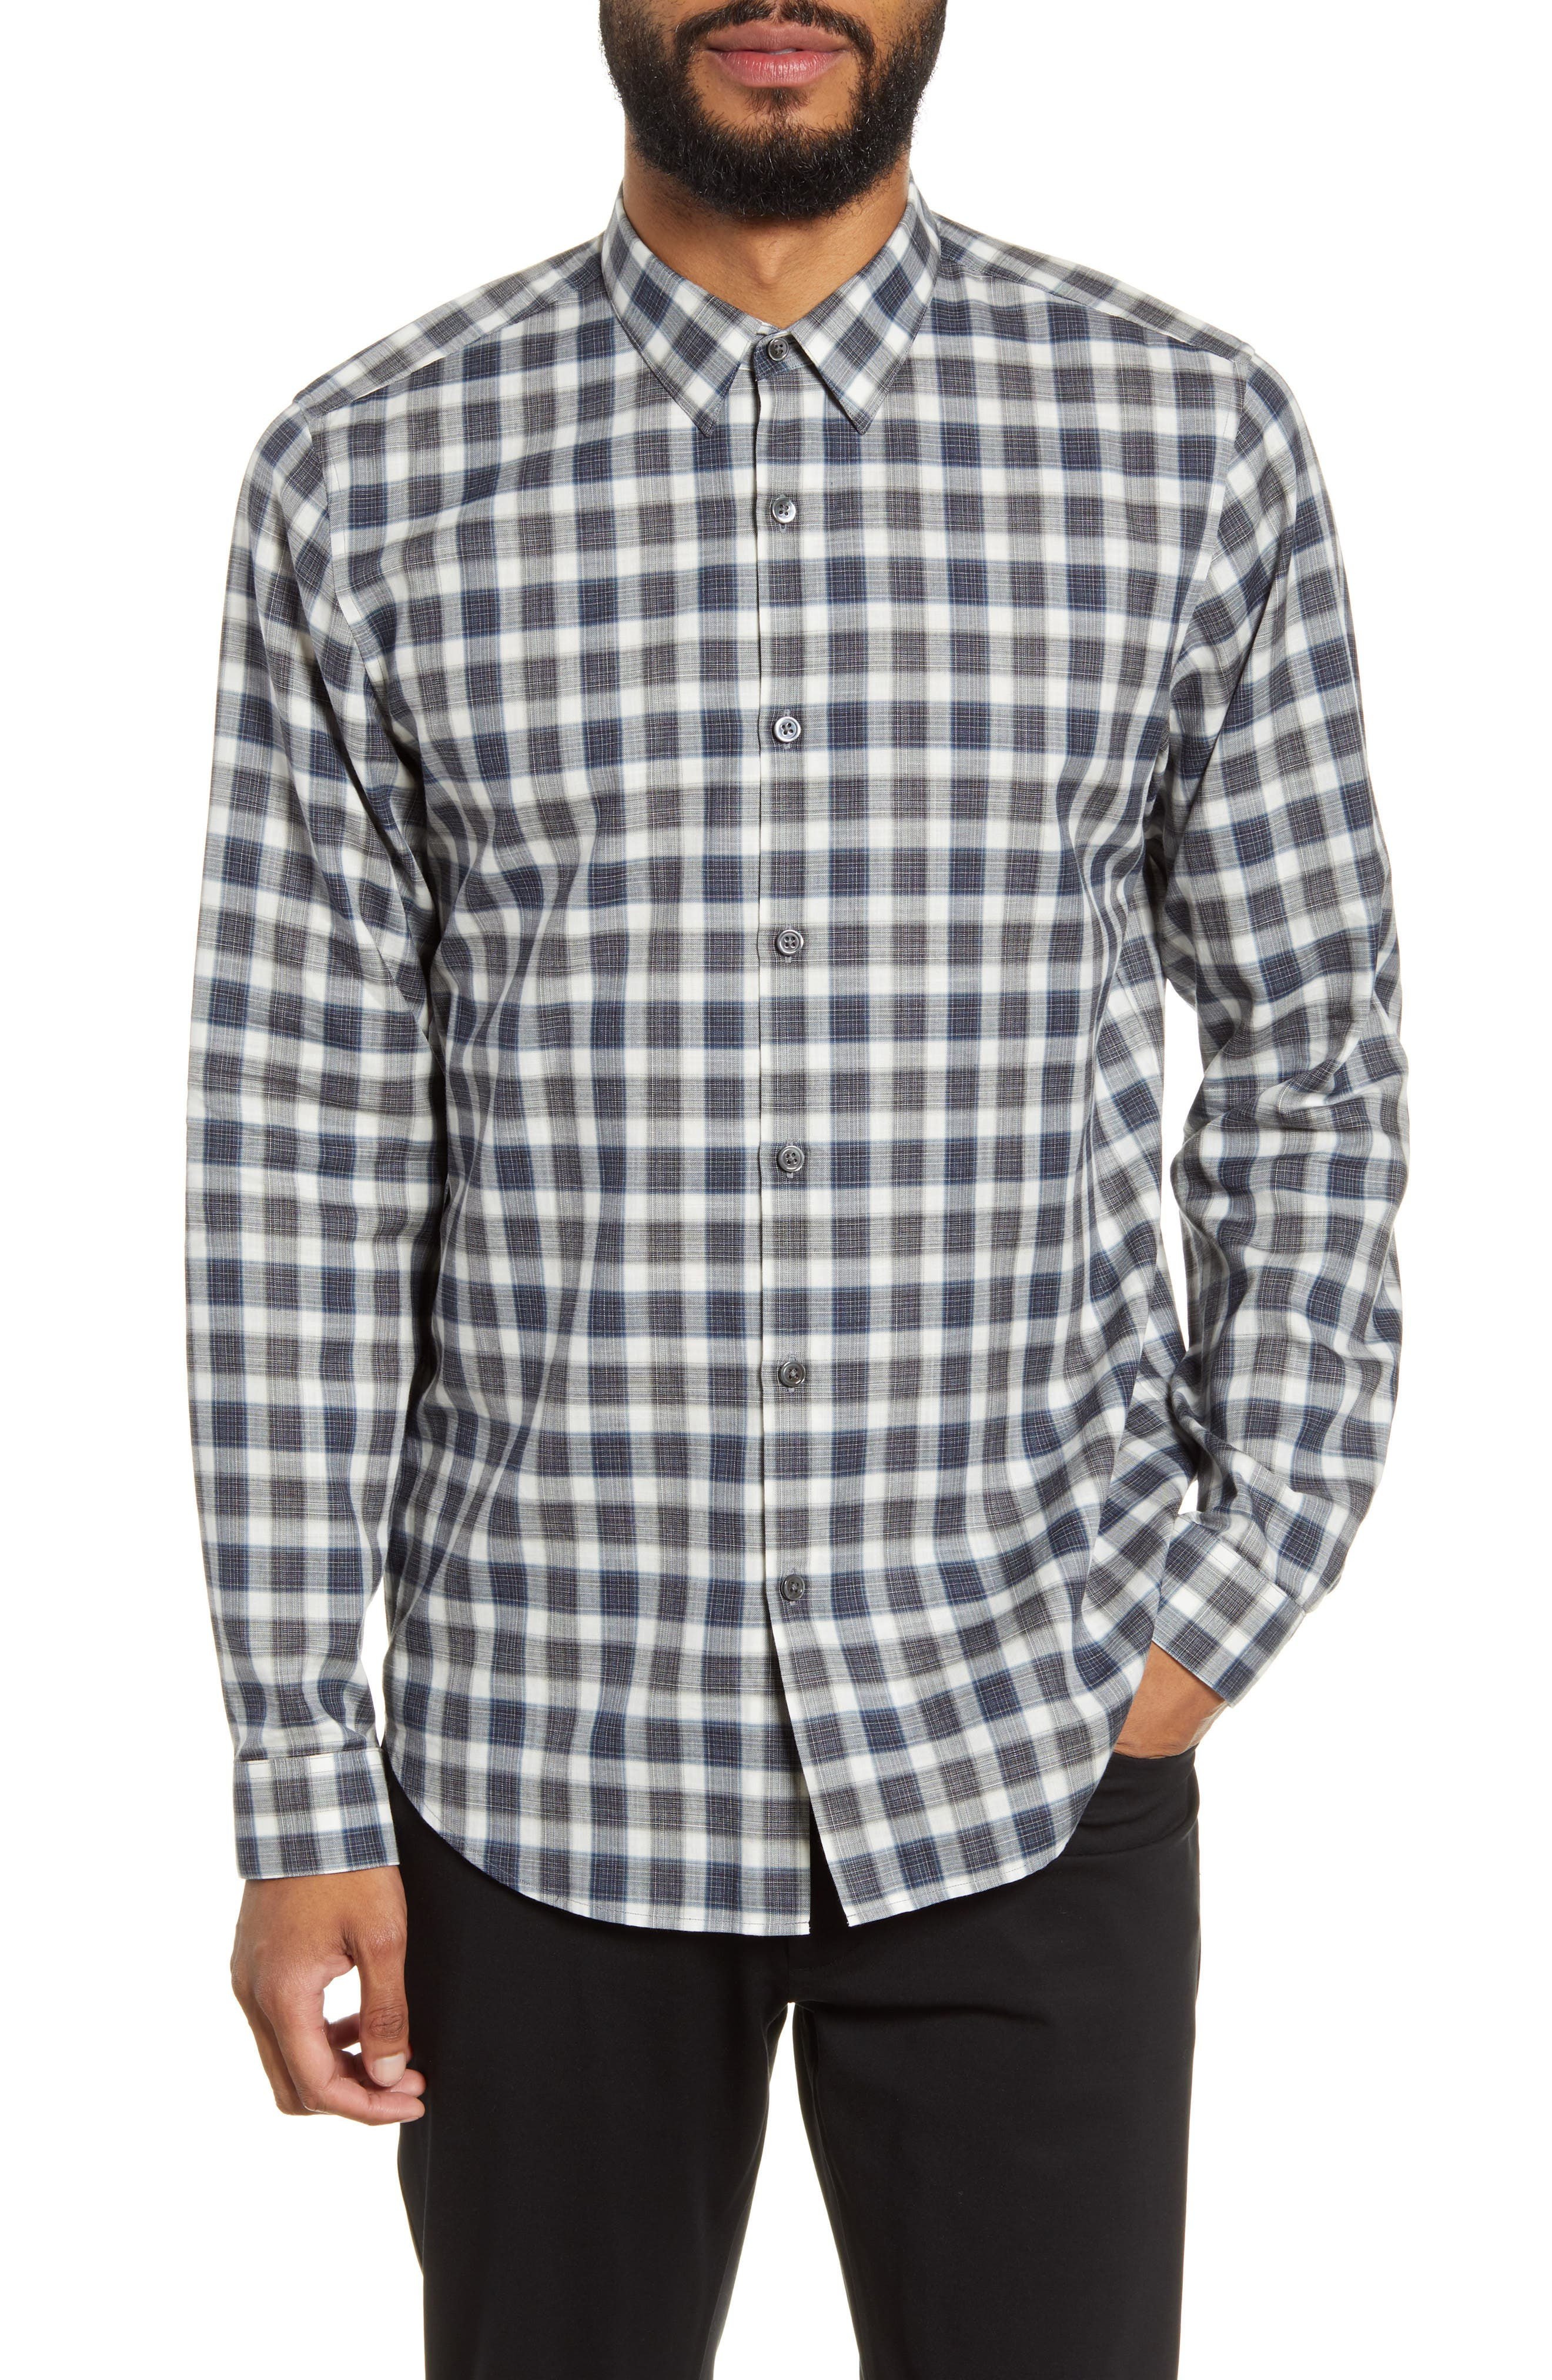 Theory T-shirts Irving Betton Slim Fit Check Button-Up Shirt